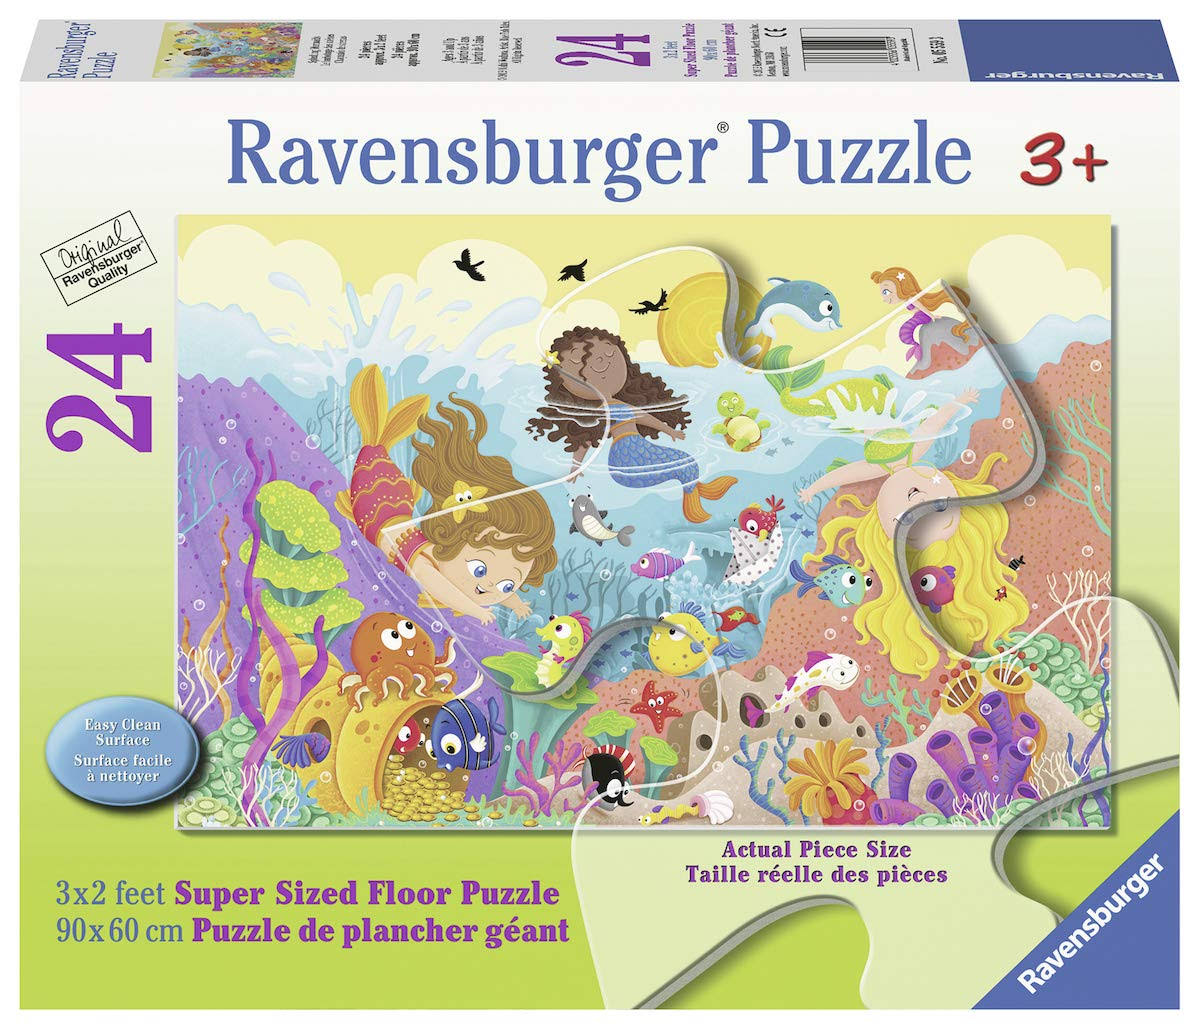 Ravensburger 24 Piece Puzzle Splashing Mermaids